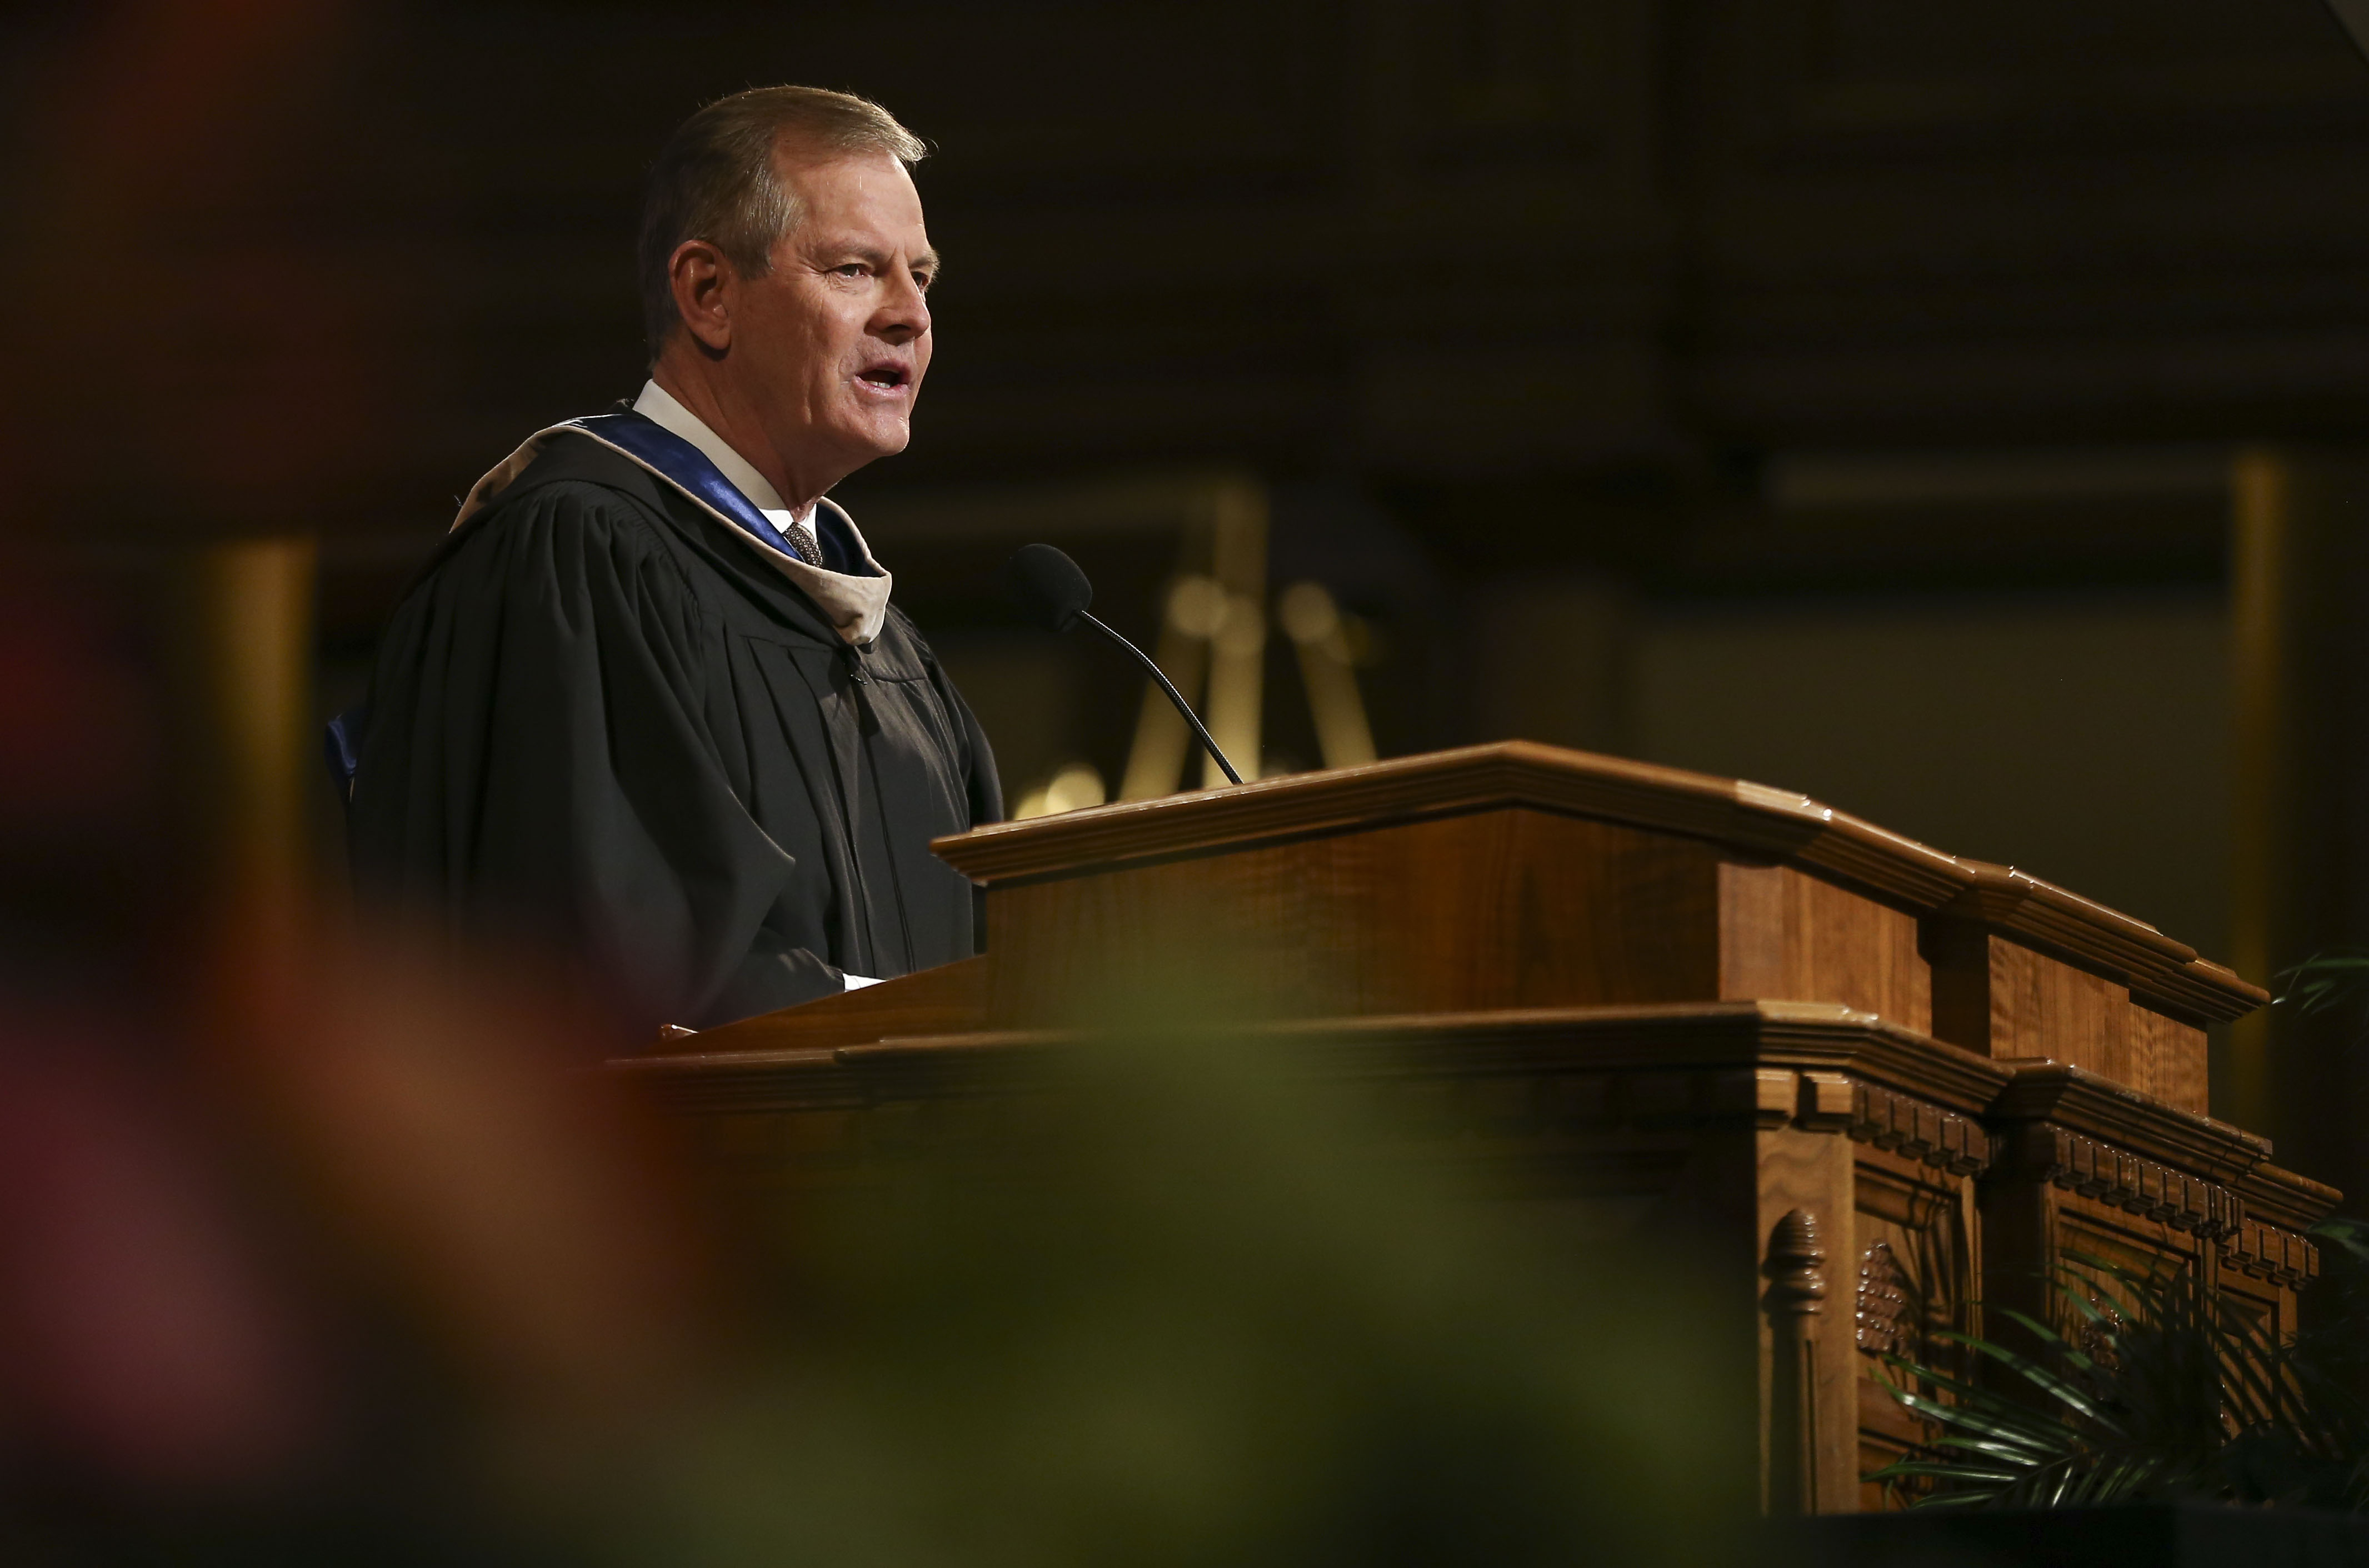 Elder Gary E. Stevenson of the Quorum of the Twelve Apostles speaks during the commencement ceremony for LDS Business College at the Tabernacle on Temple Square in Salt Lake City on Friday, April 12, 2019.